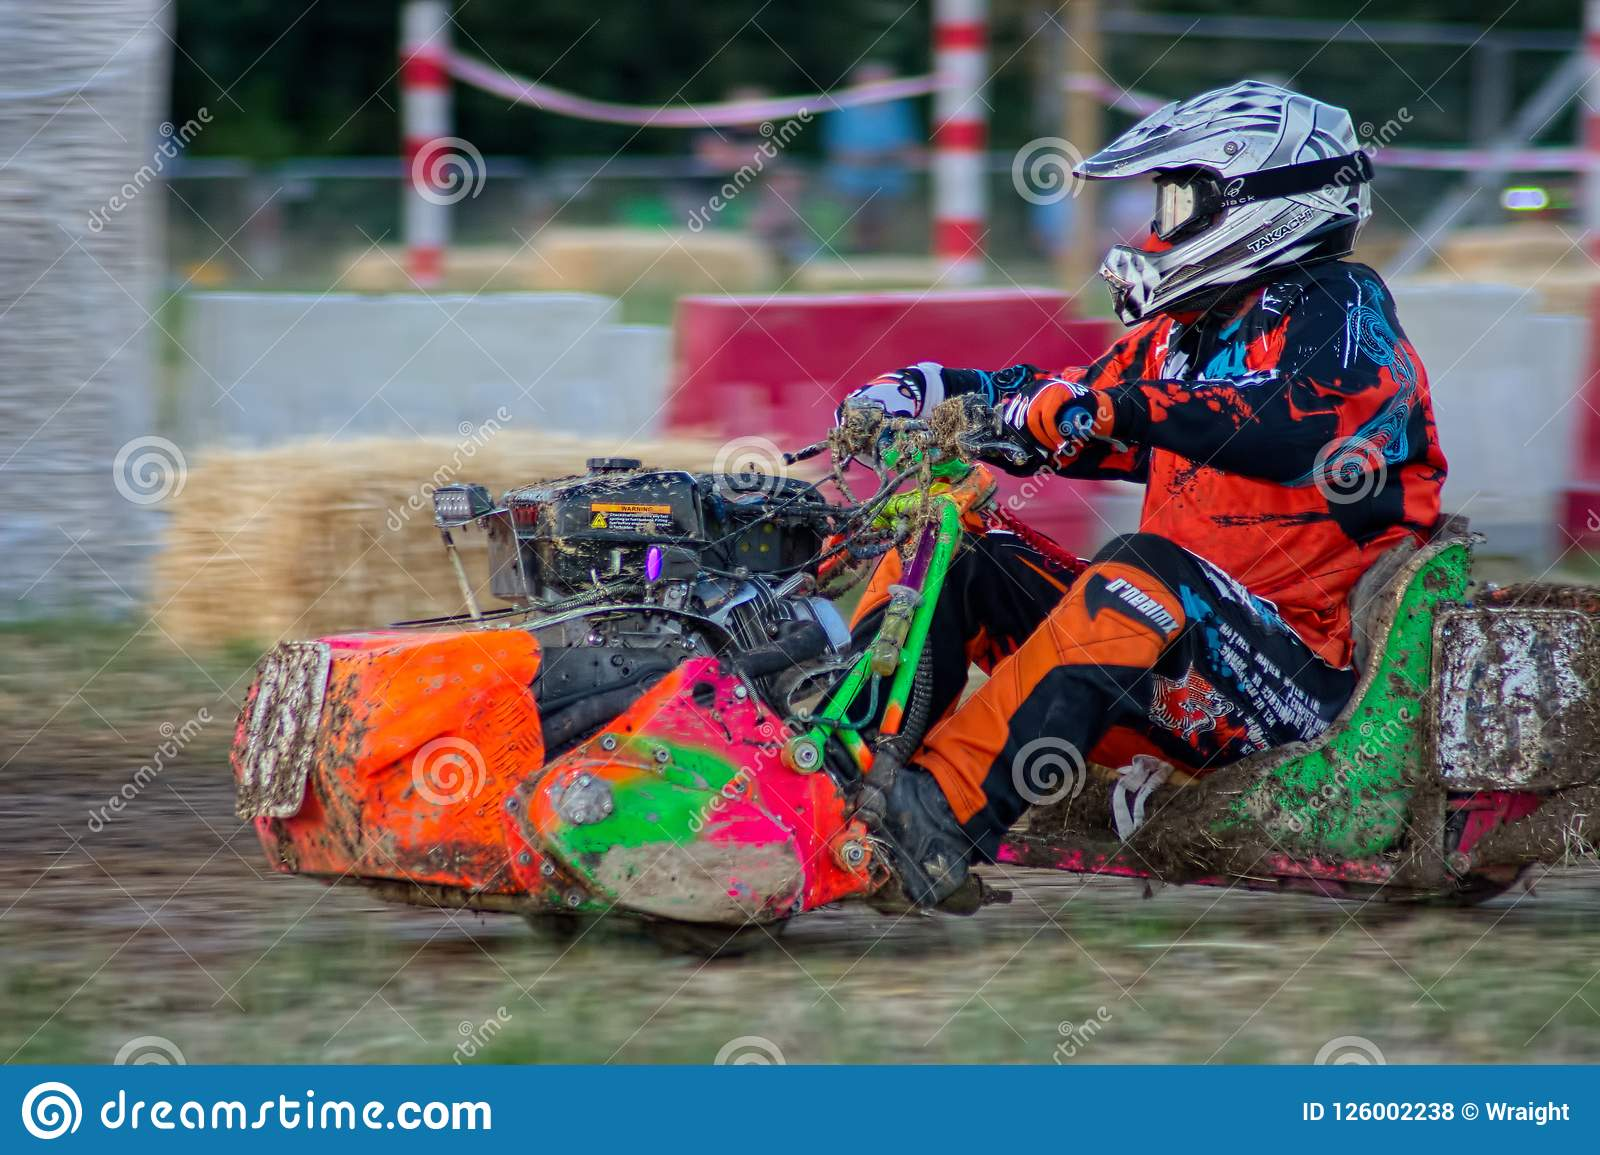 Lawn Mower Racing >> Lawn Mower Racing Editorial Stock Photo Image Of